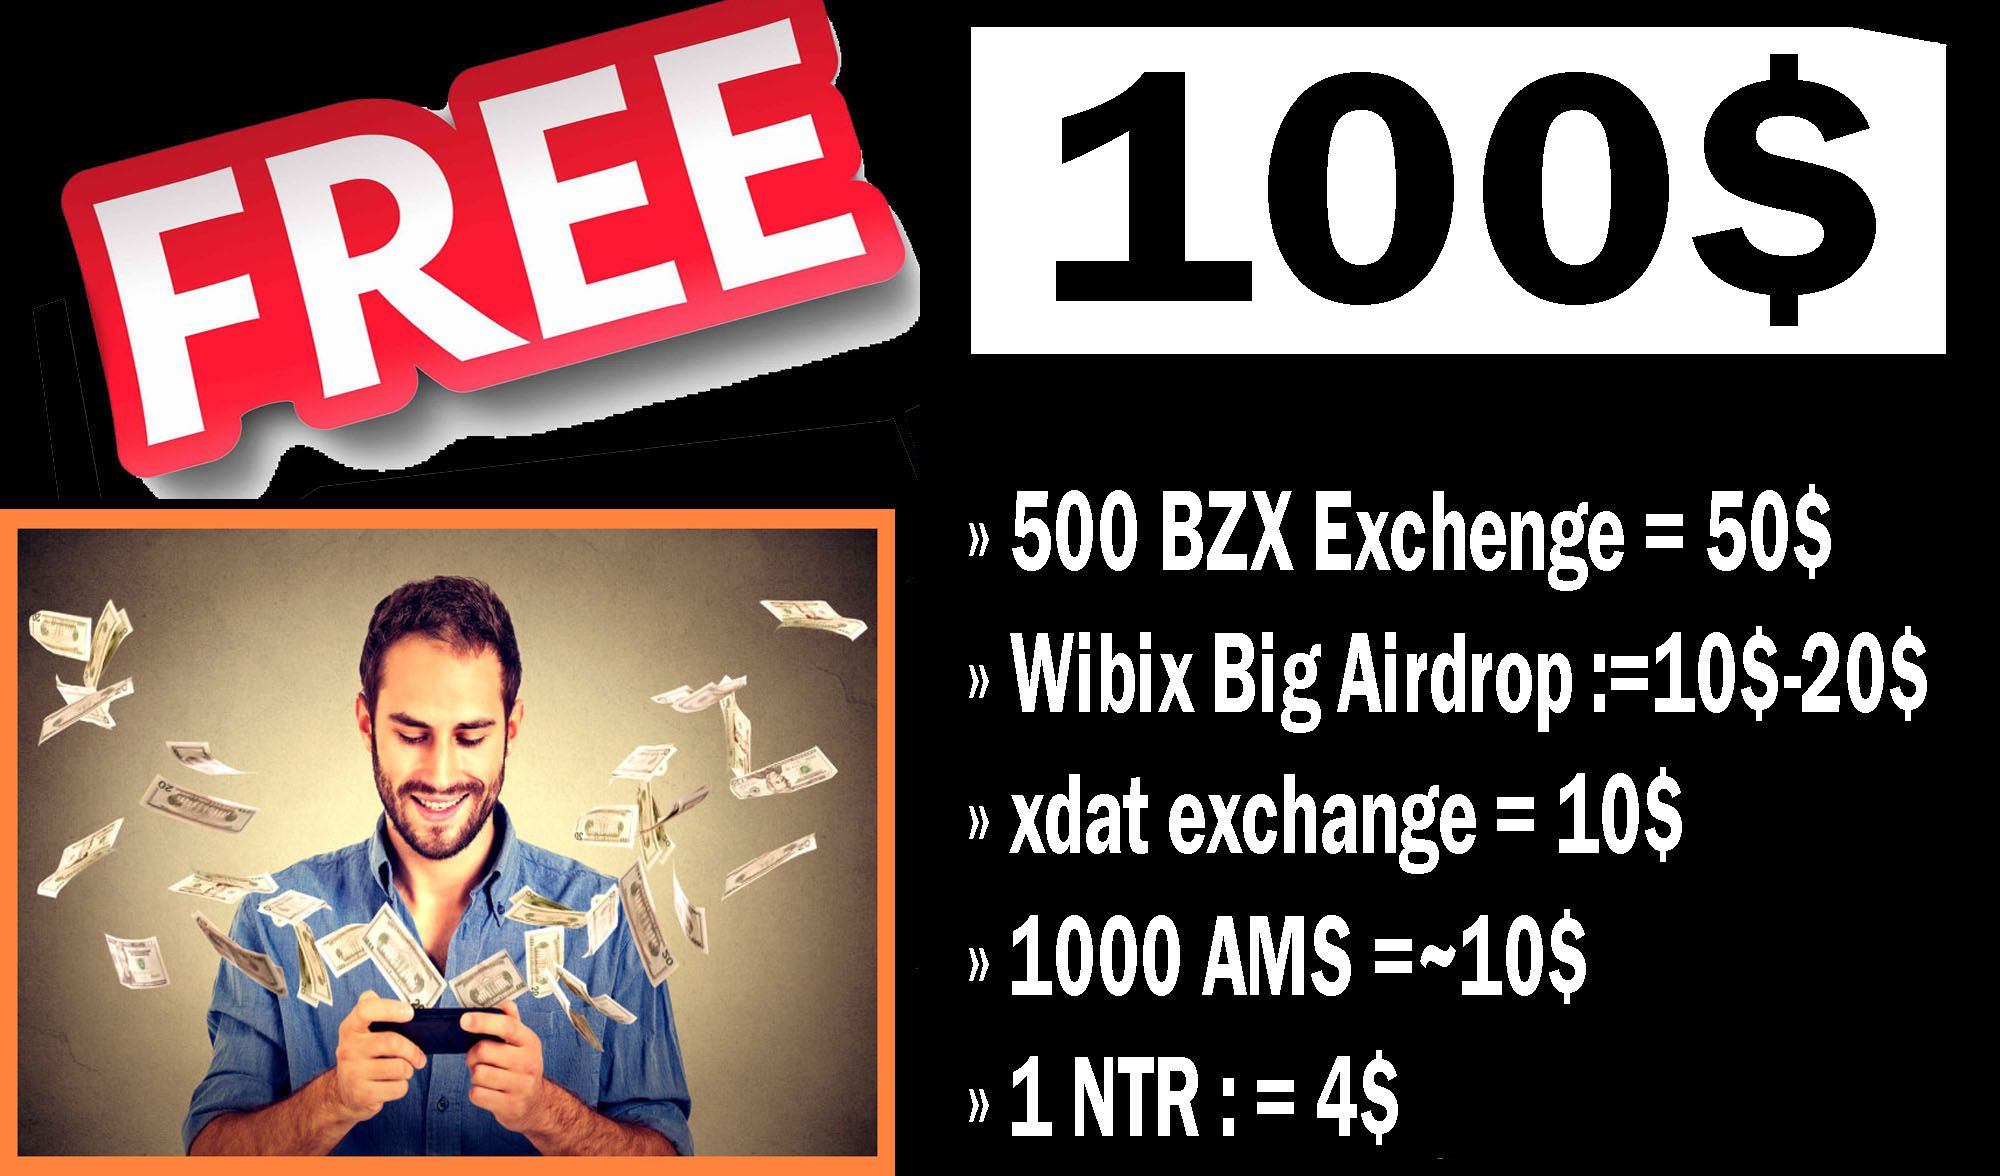 free 100 Just signup in this exchange Free